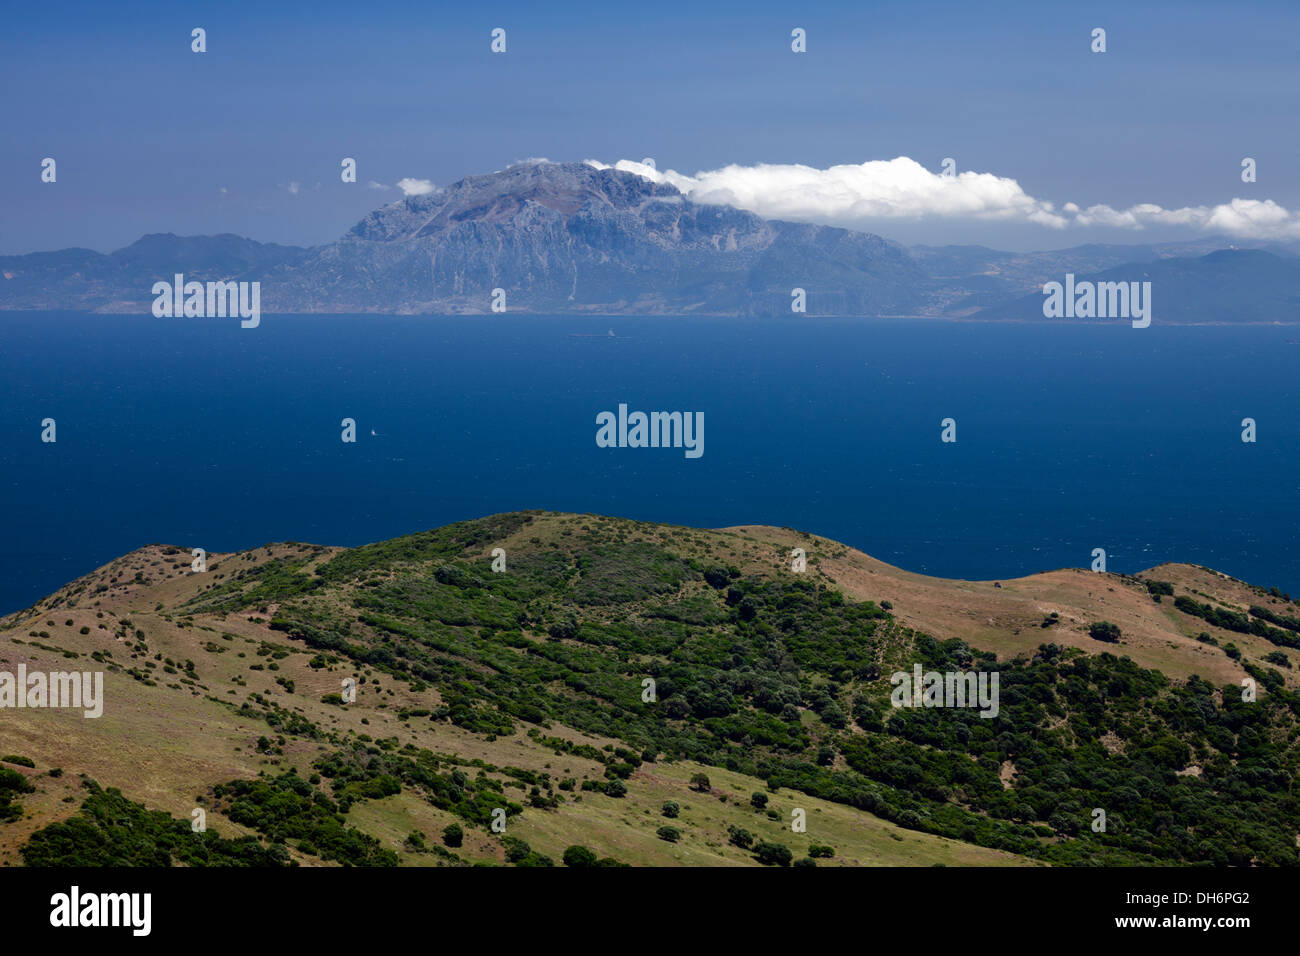 Strait of gibraltar pillars of hercules stock photos - Moroccan port on the strait of gibraltar ...